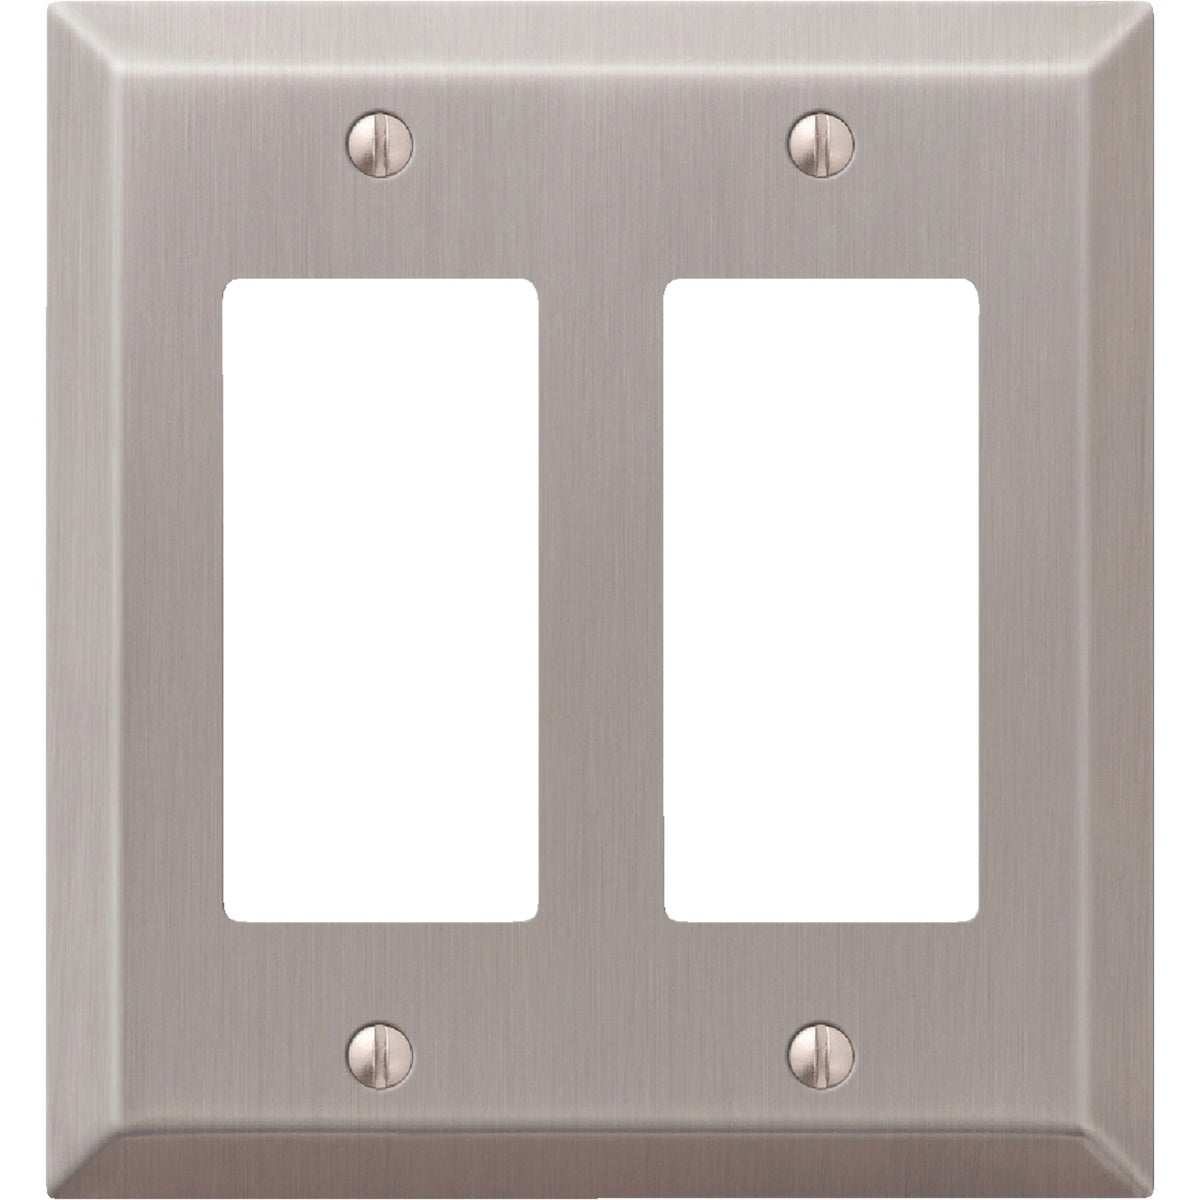 2RKR BNKL WALLPLATE - 9PT127 by Jackson Deerfield Mf